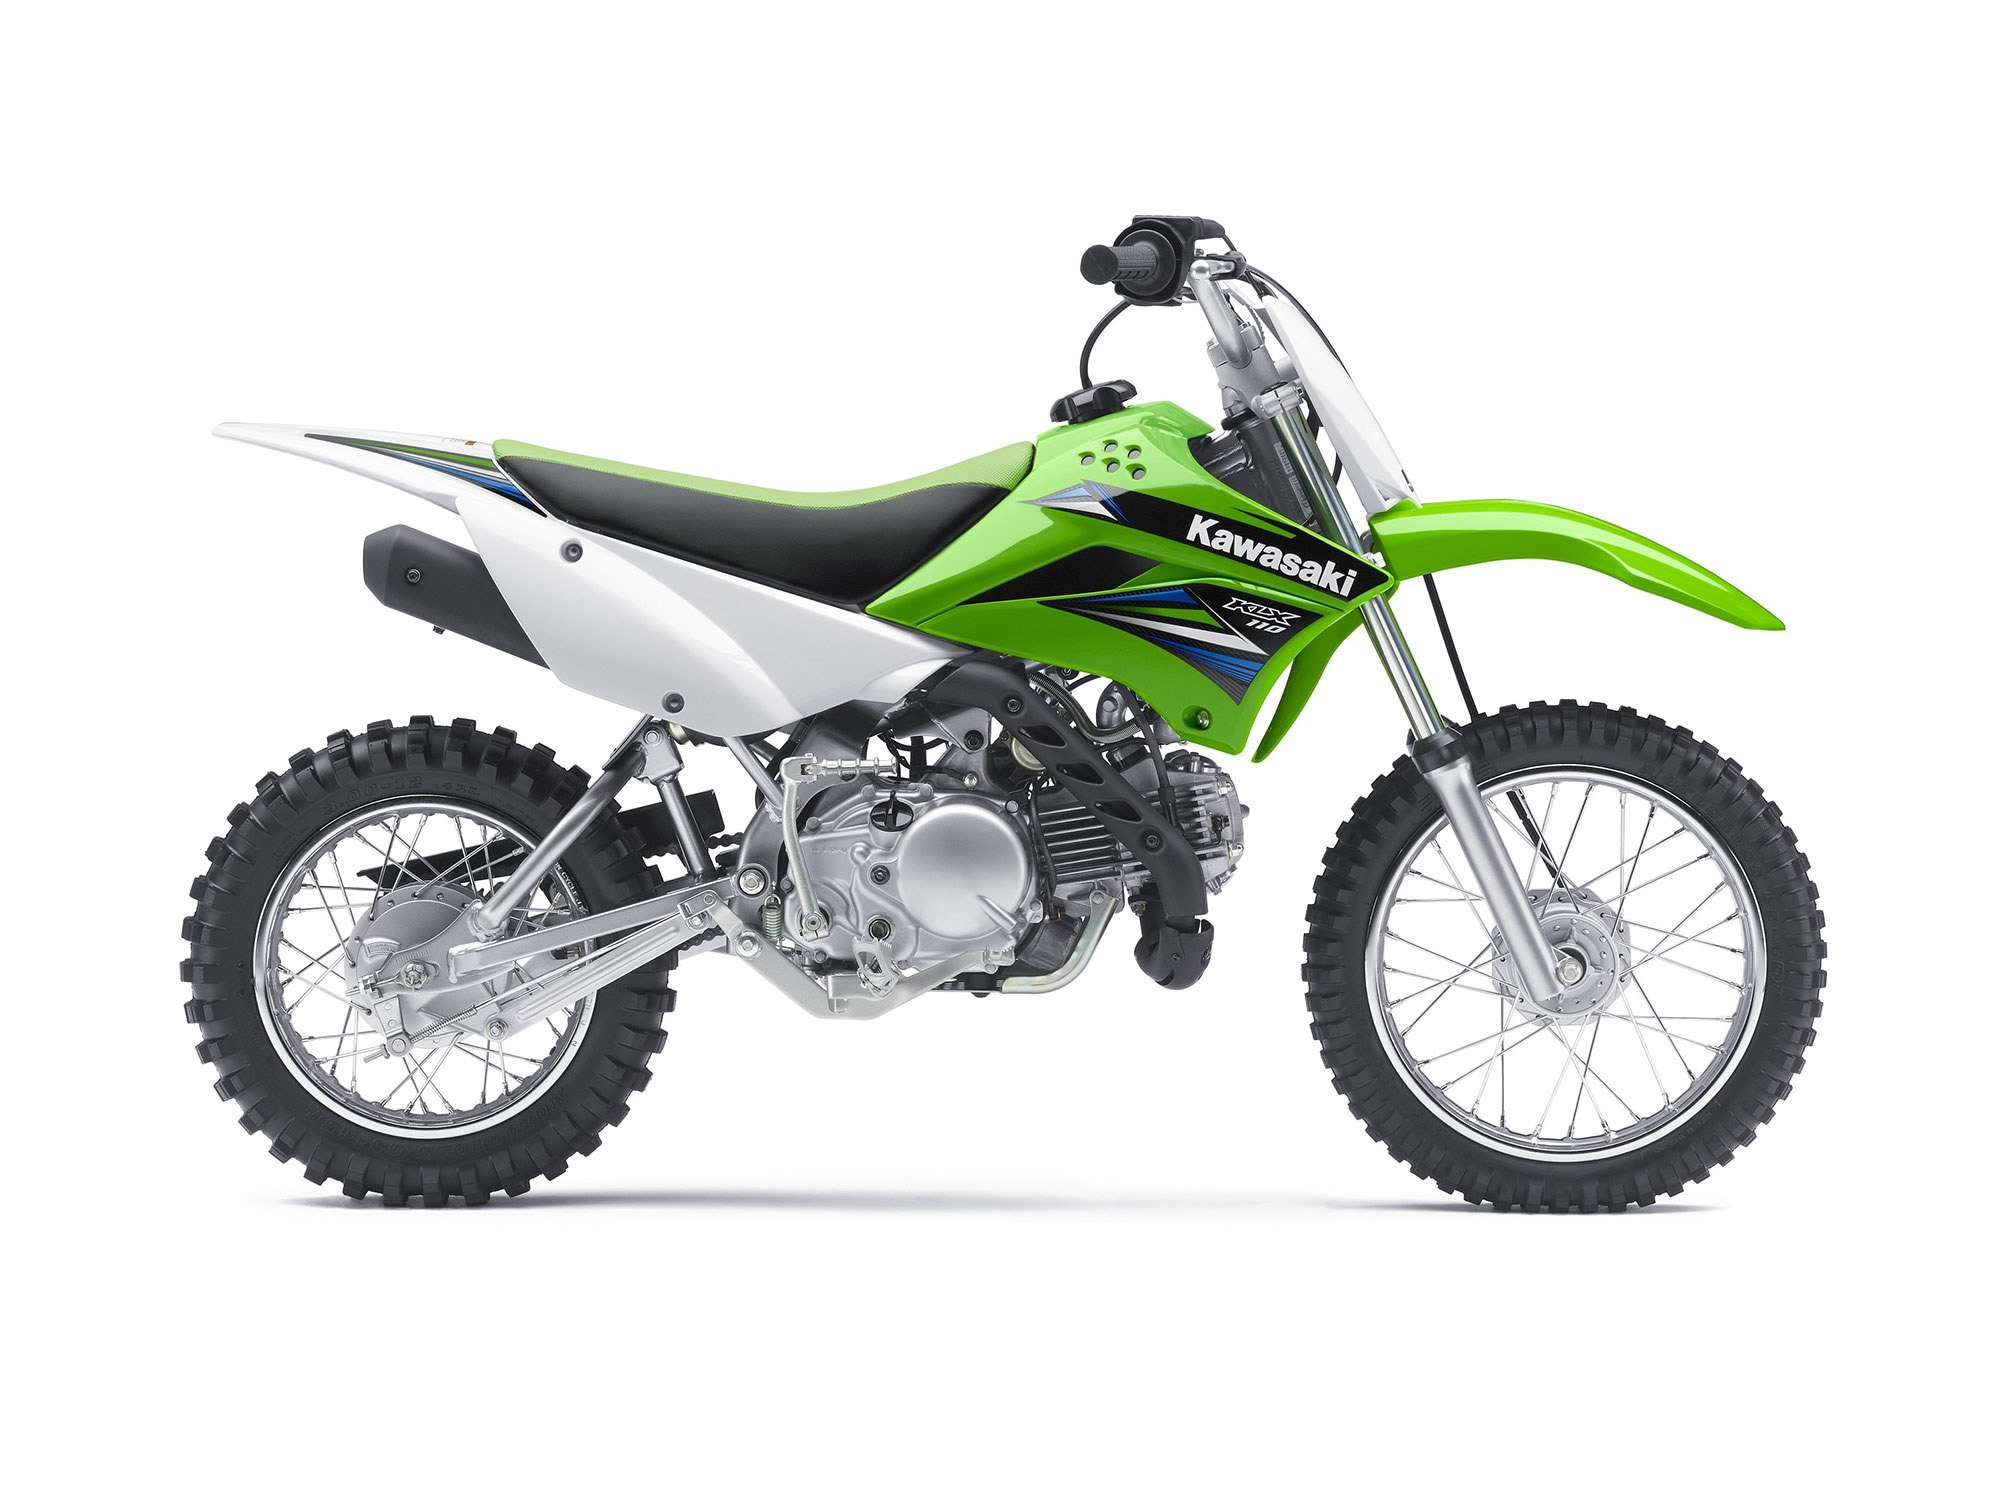 USED BIKE: 2010-2014 Yamaha PW50 - Australasian Dirt Bike